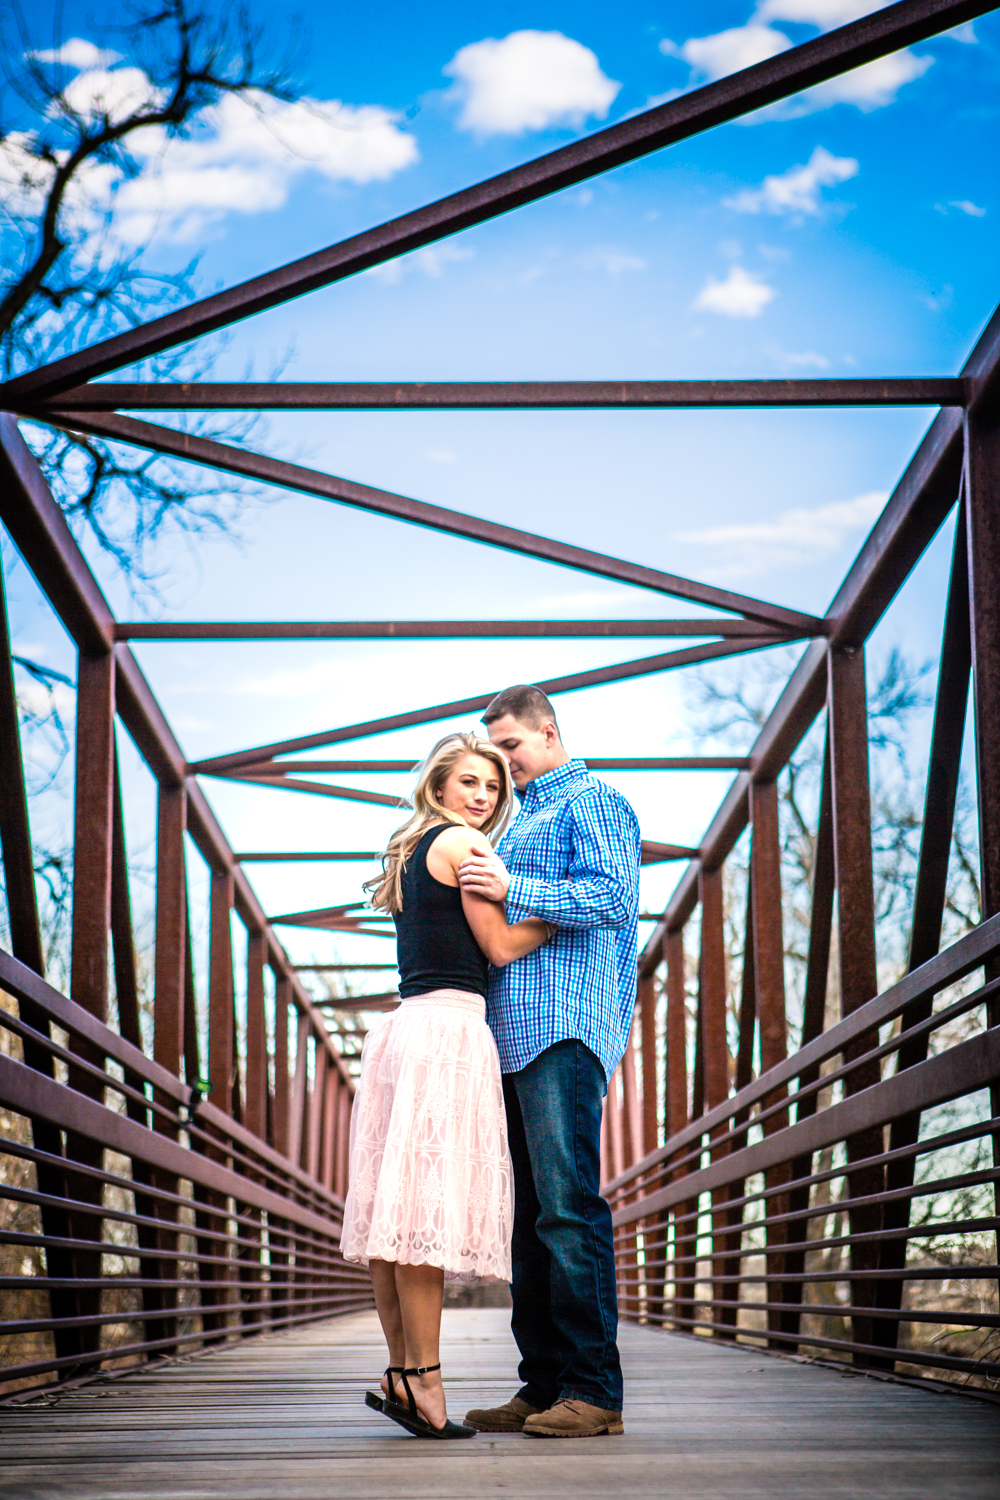 Lions Park Engagement Photos by JMGant Photography | Fort Collin | Cody and Morgan